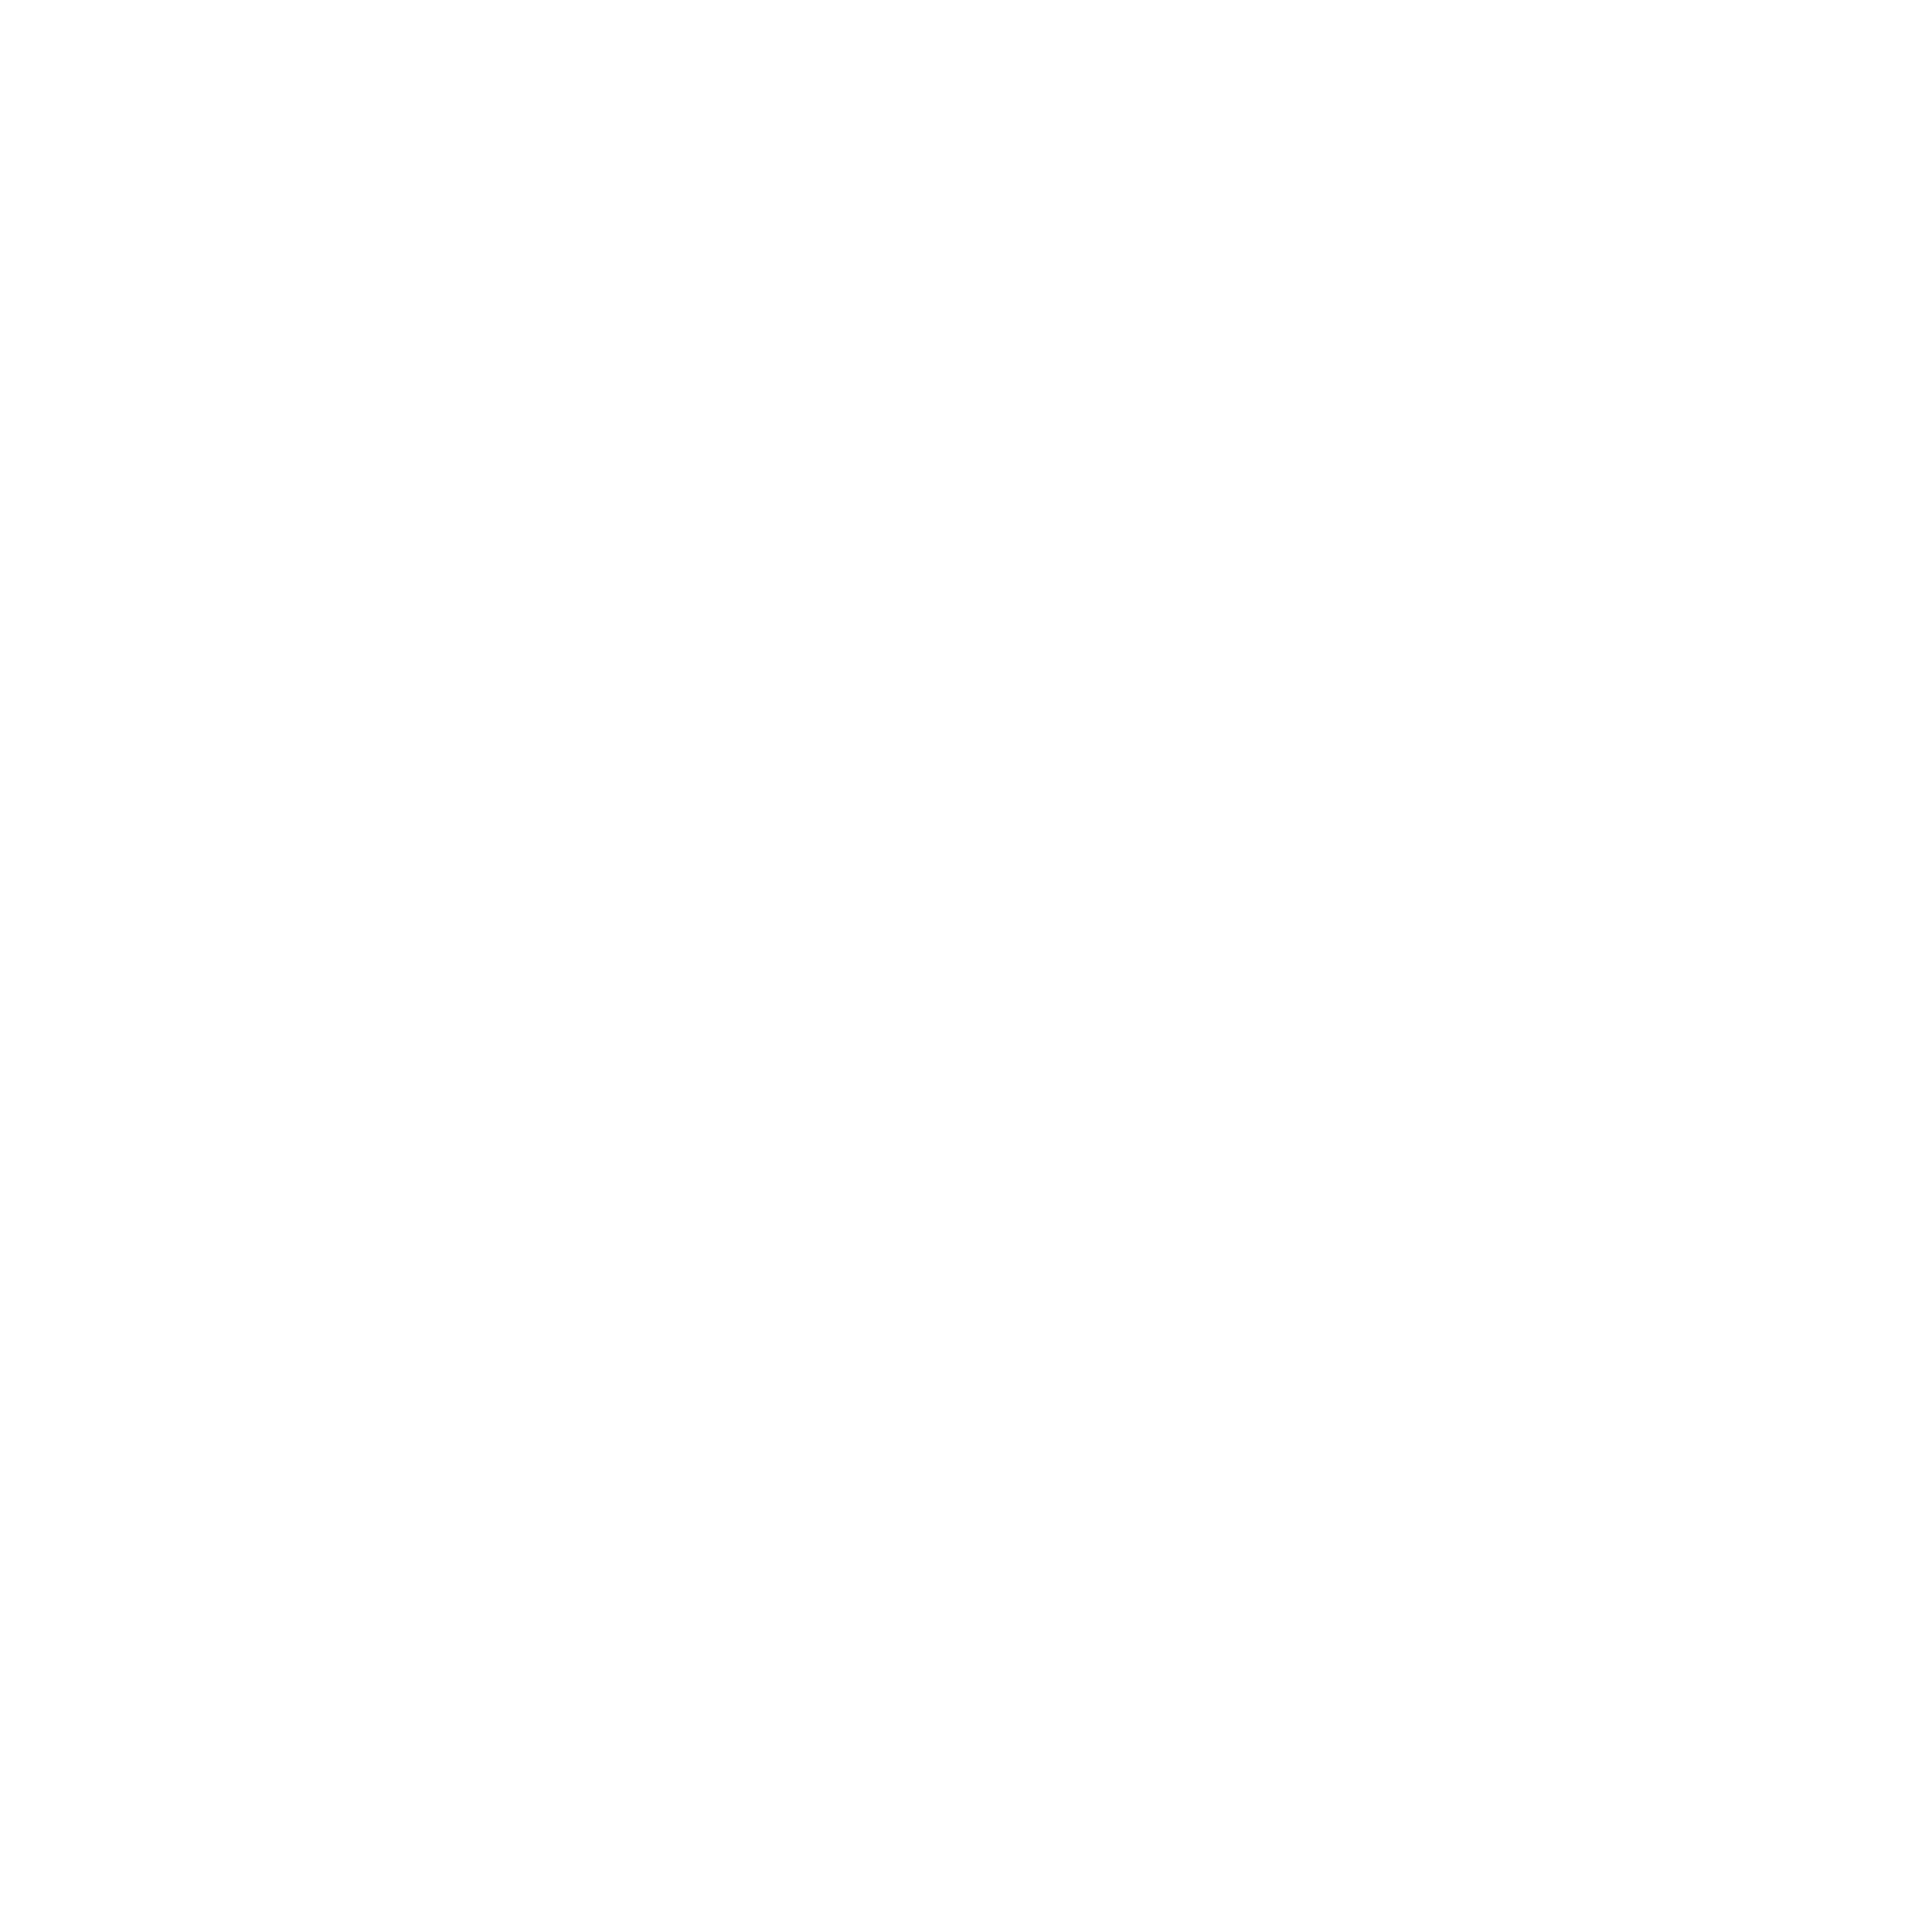 logo zn production